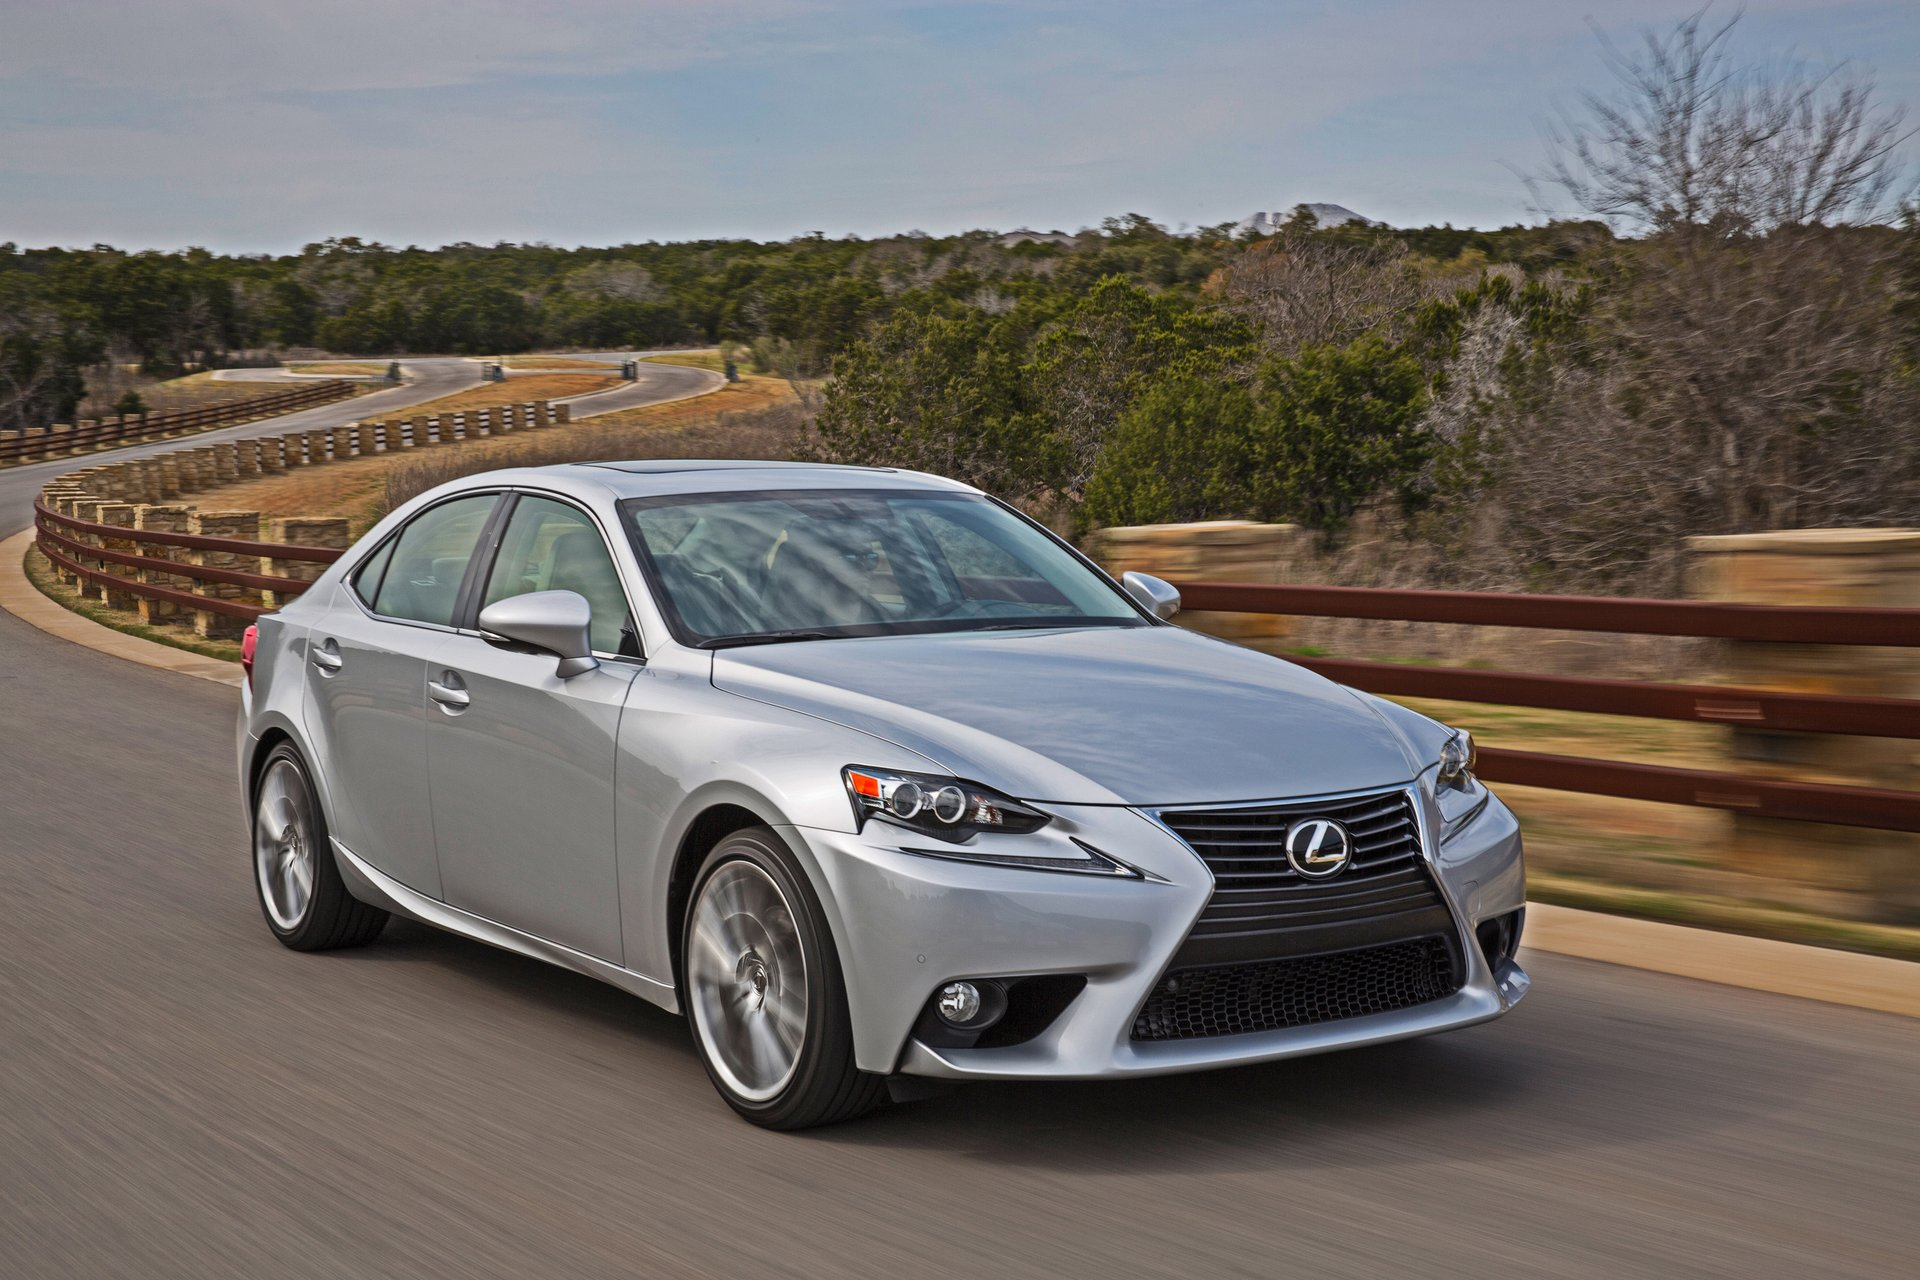 2014 Lexus Is350 F Sport Specs >> 2015 Lexus IS Review, Ratings, Specs, Prices, and Photos - The Car Connection